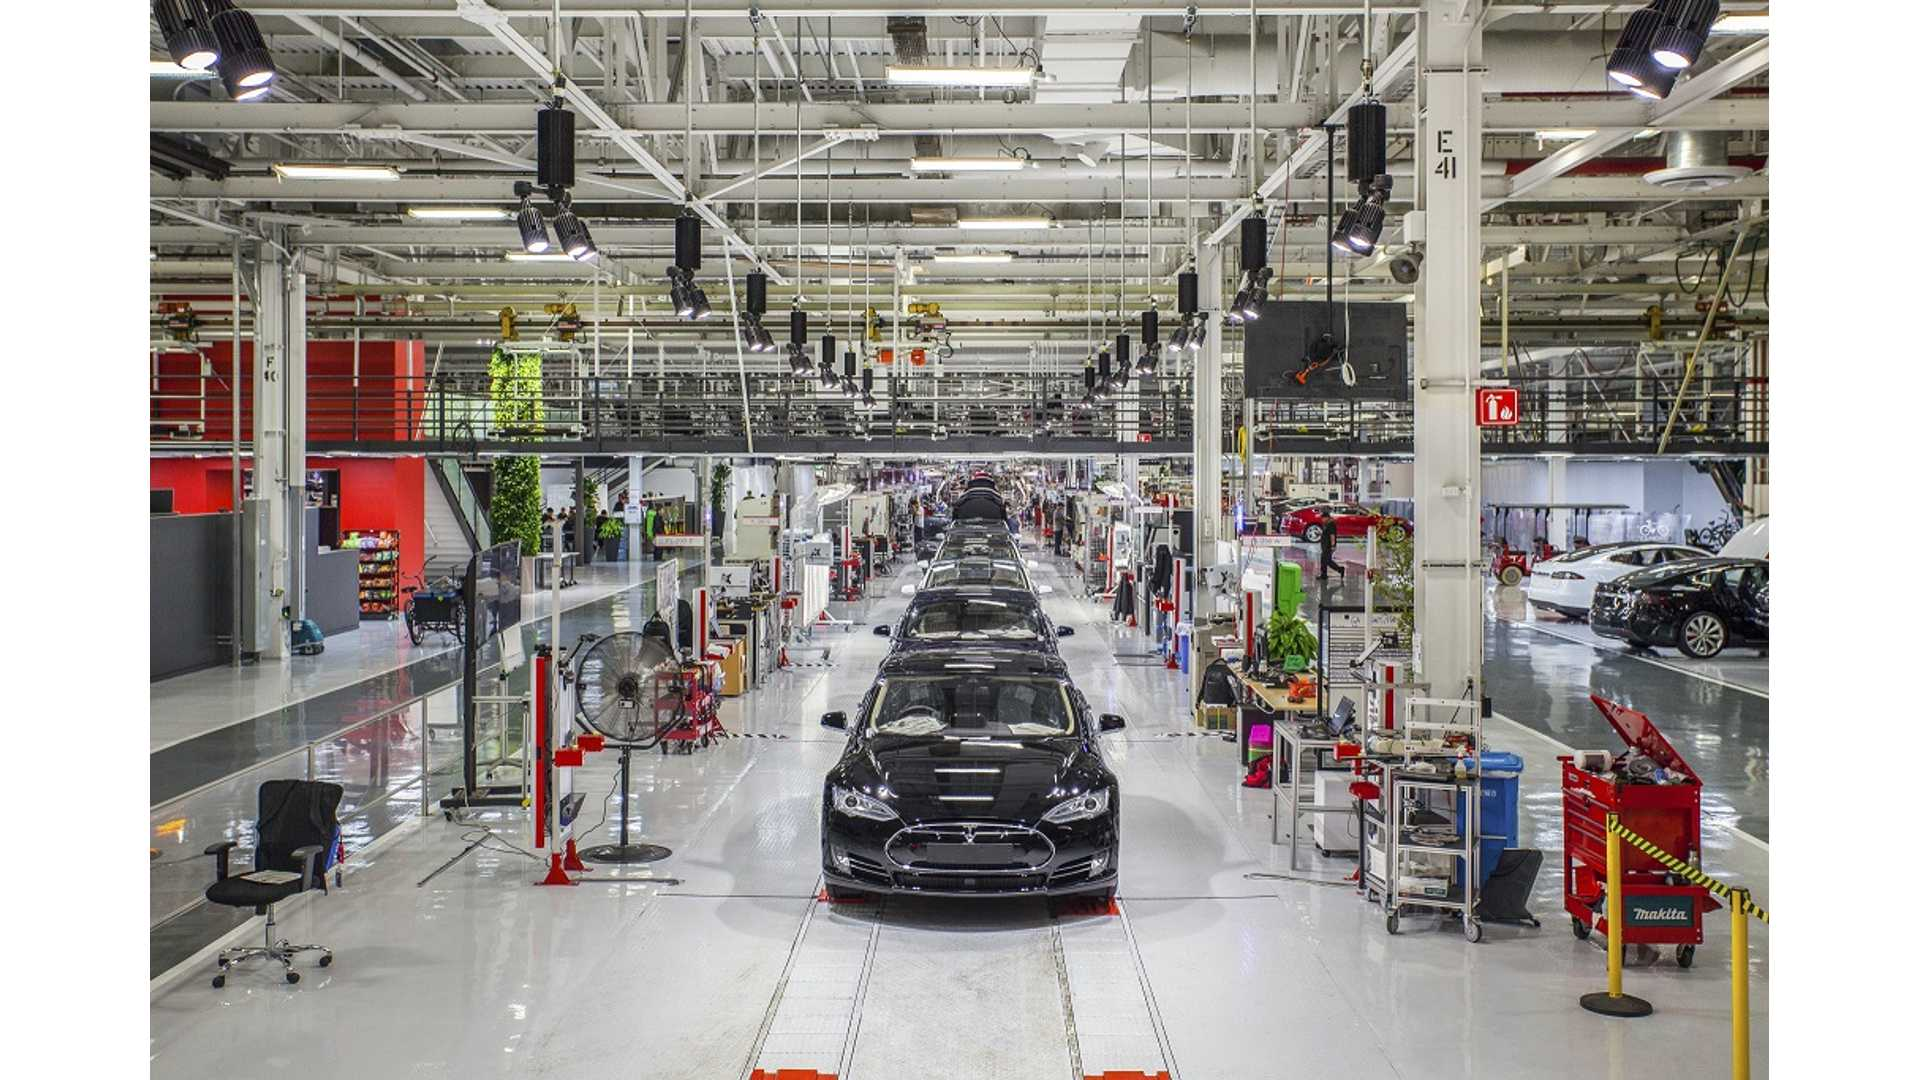 Report: Tesla's Fremont Factory Not Efficient, Employs Too